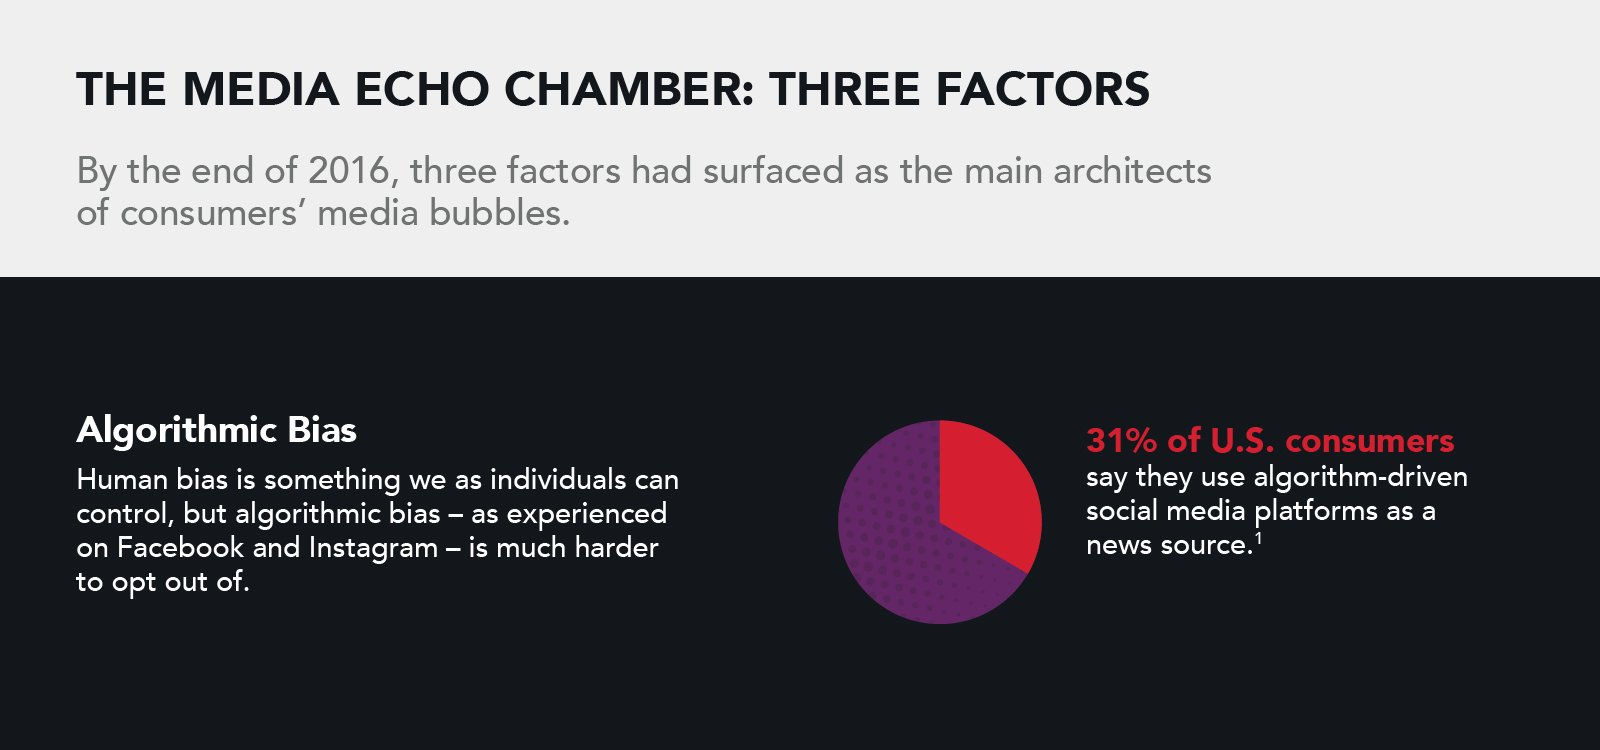 Publicis Experiences Digital Brands and Live Experiences - Media echo chamber's algorithmic bias